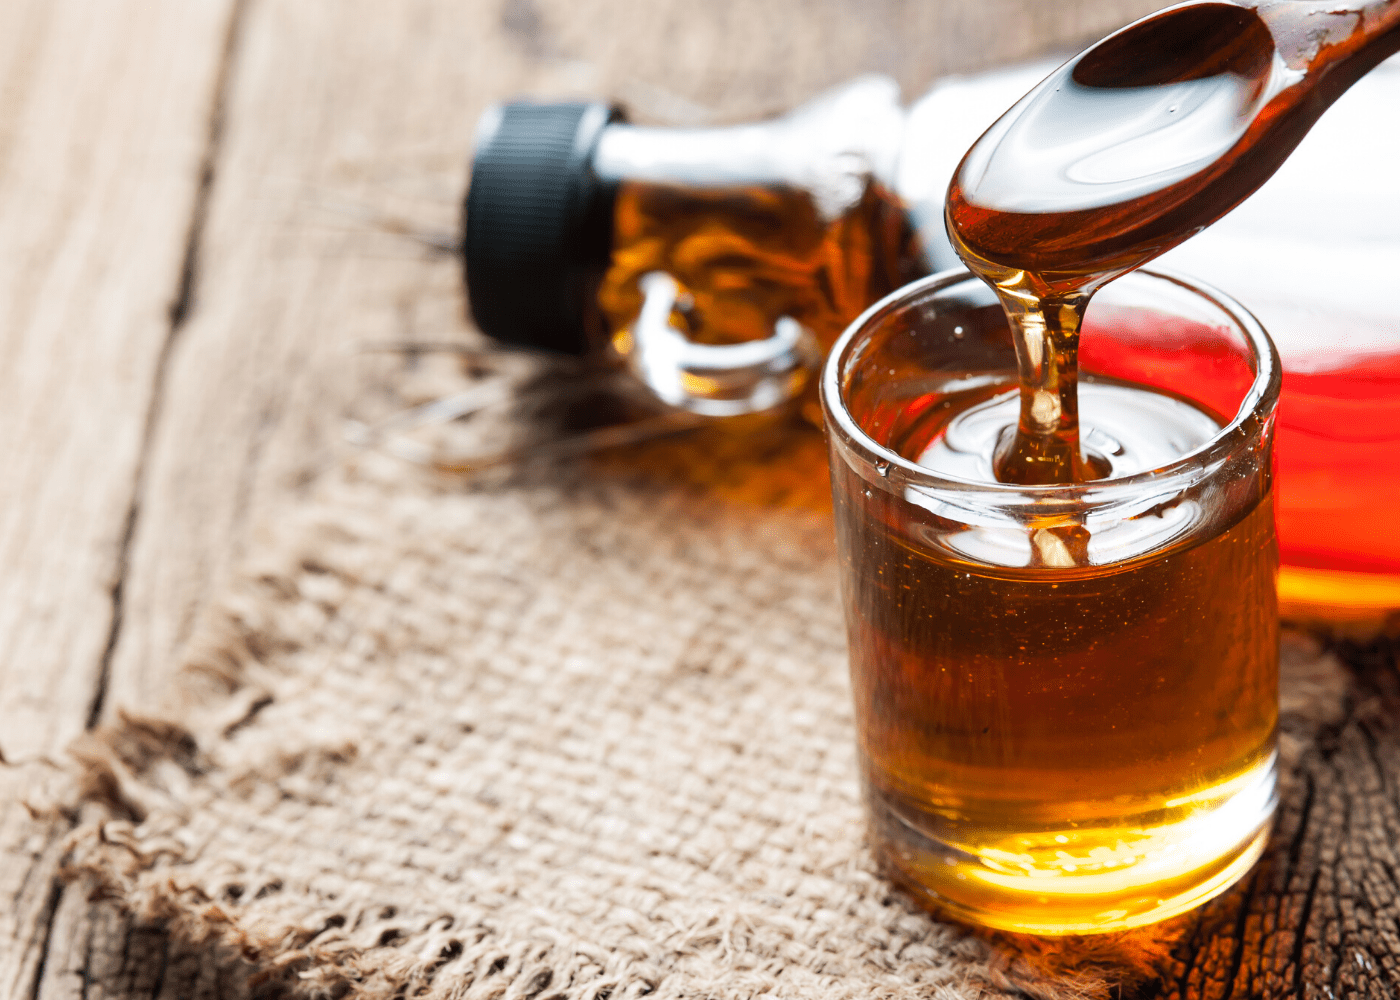 We're all about the sweet life: Try these natural sweeteners to substitute sugar